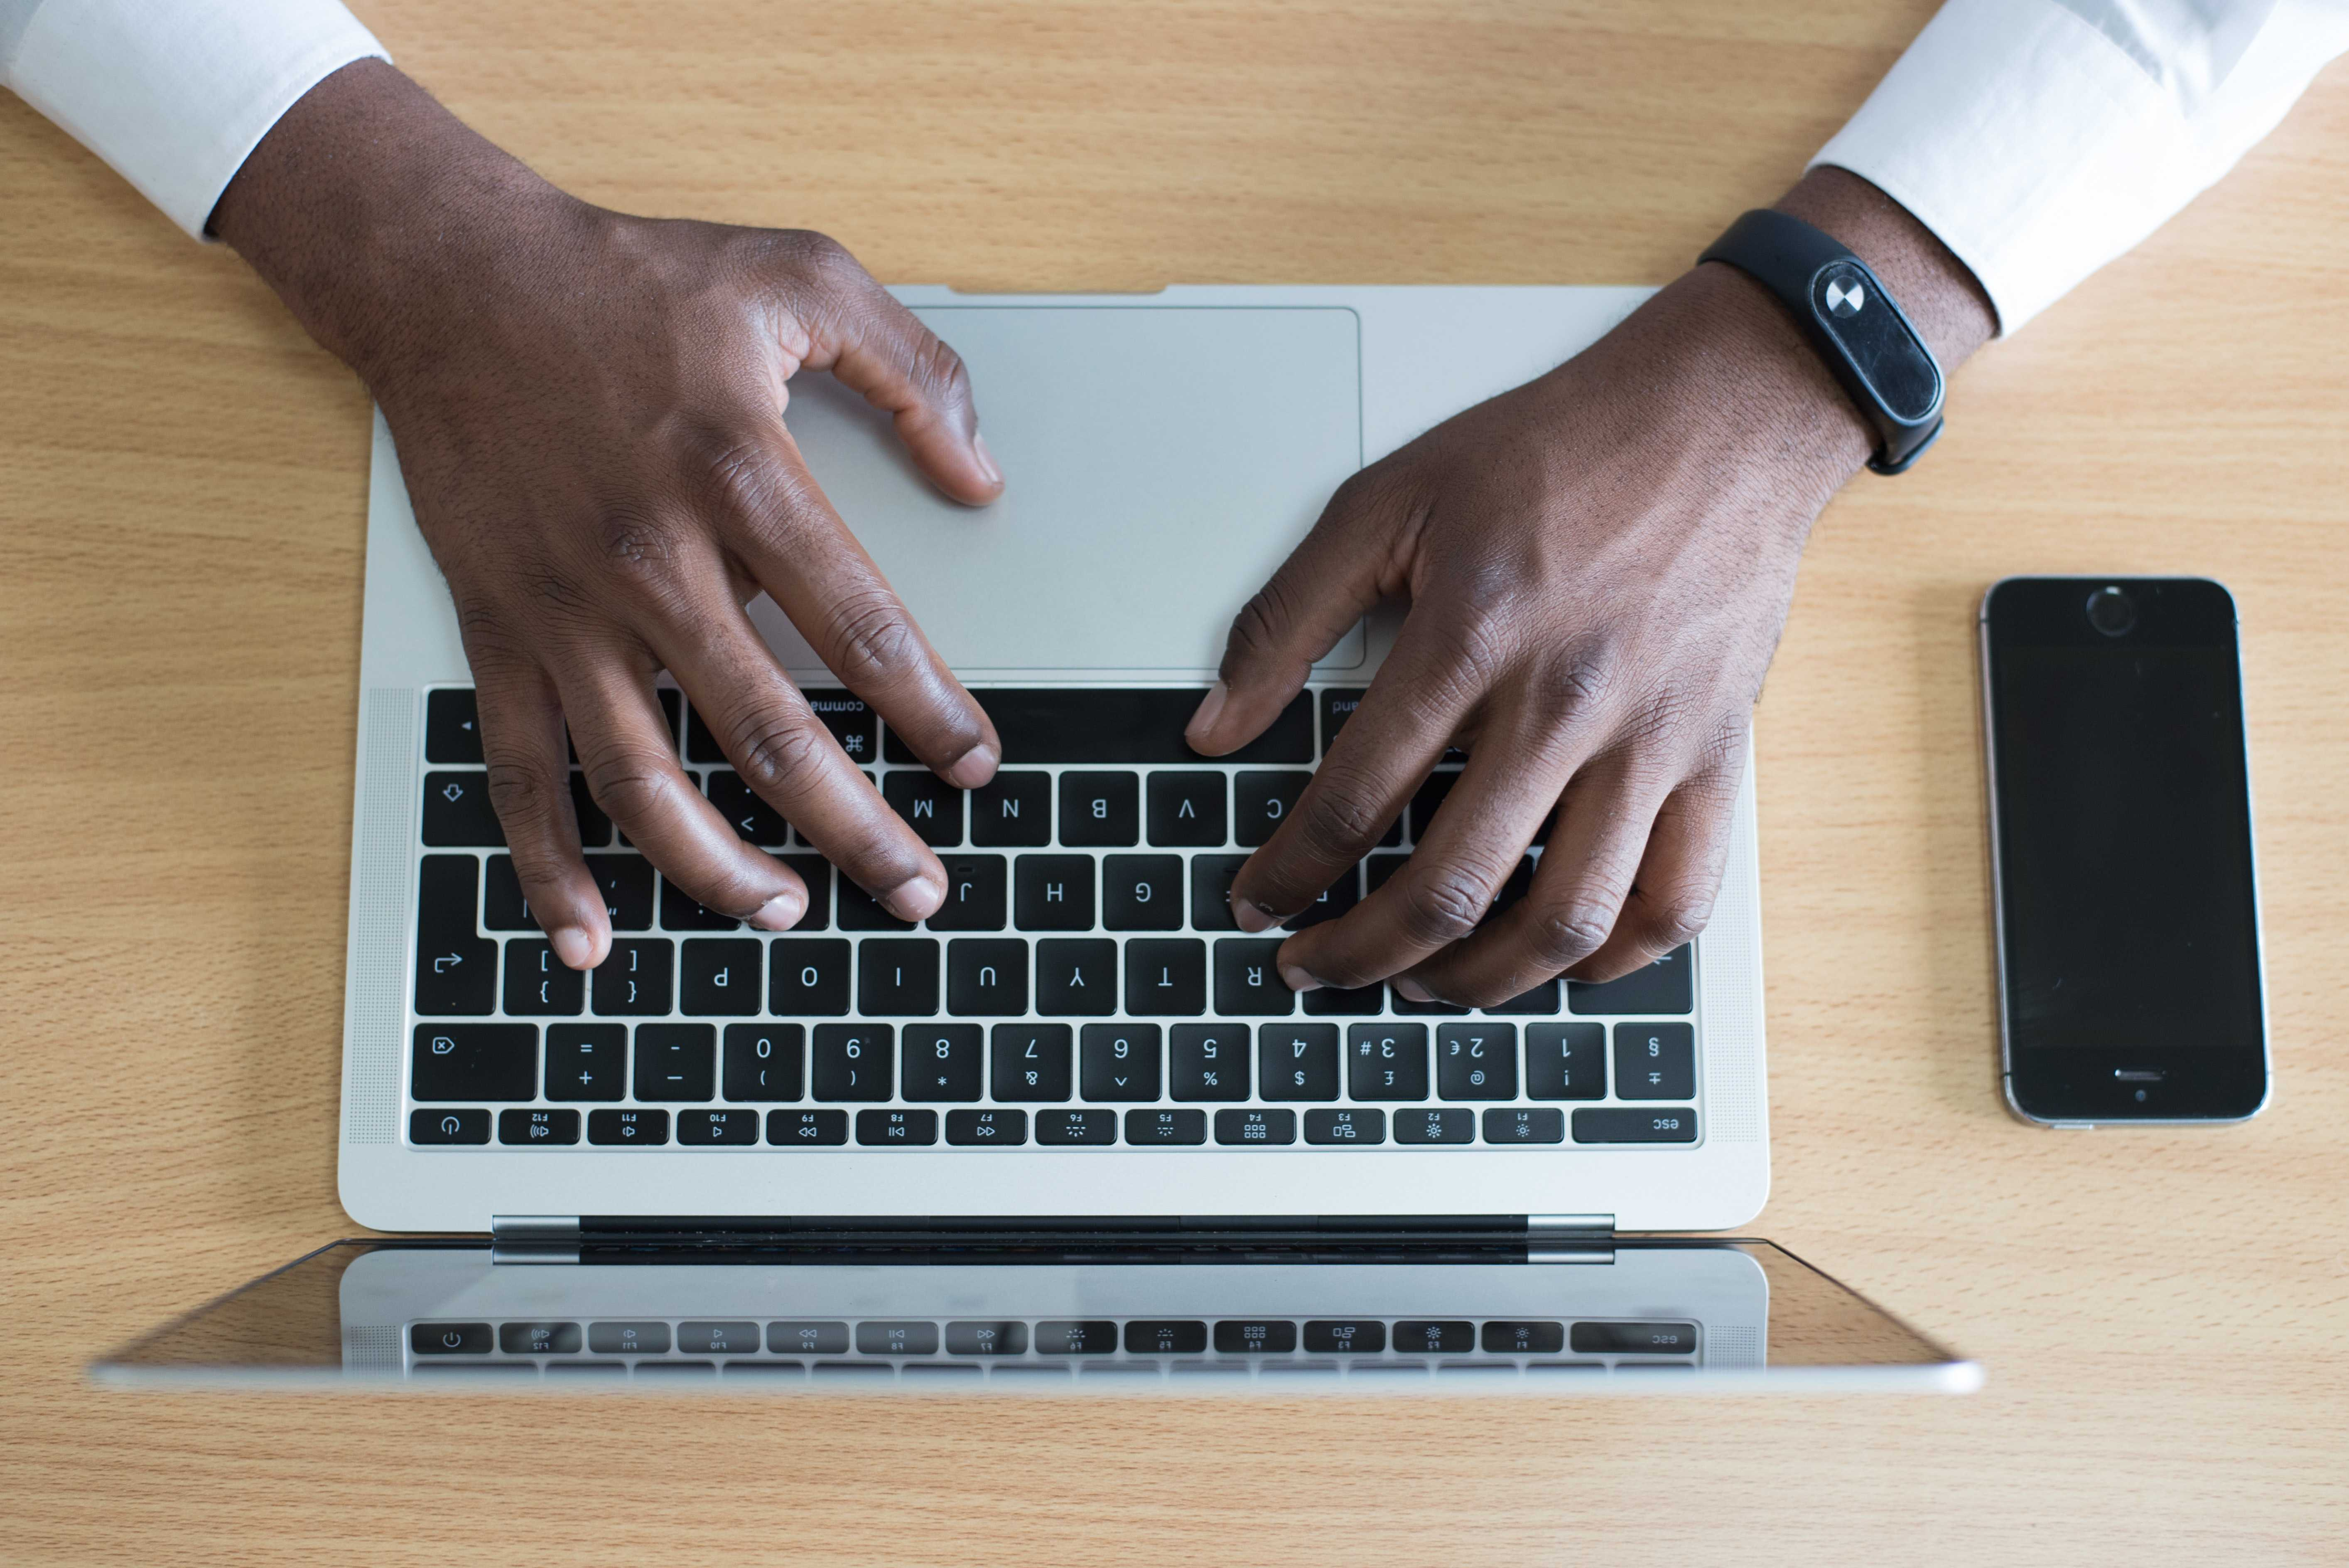 Black person's hands using a laptop